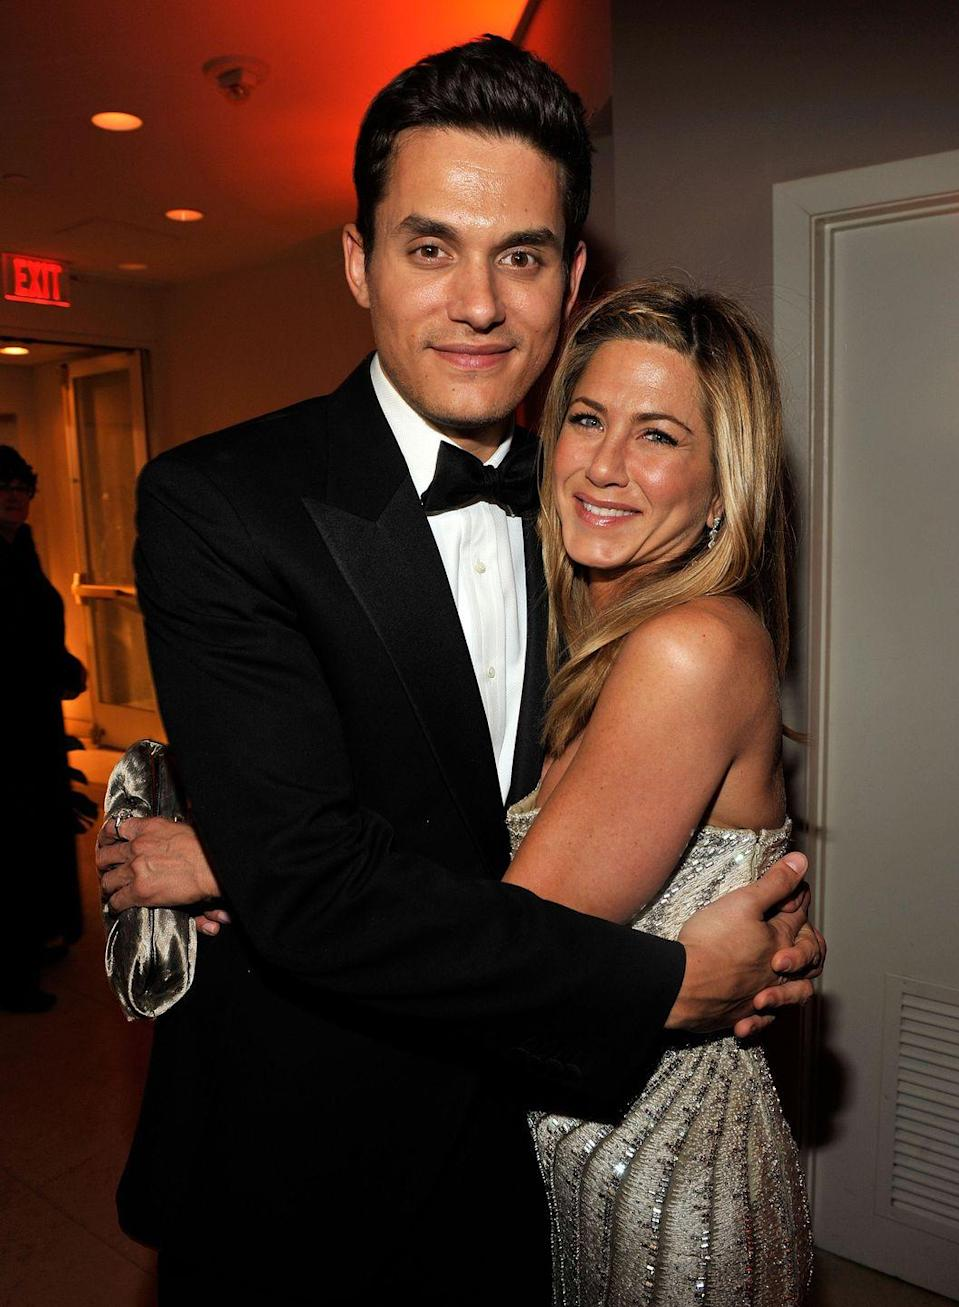 """<p>John Mayer and Jen dated on and off in 2009. Though it didn't end well, John <a href=""""https://www.marieclaire.co.uk/entertainment/people/john-mayer-jennifer-aniston-break-up-645653"""" rel=""""nofollow noopener"""" target=""""_blank"""" data-ylk=""""slk:later regretted"""" class=""""link rapid-noclick-resp"""">later regretted</a> how he acted toward the <em>Dumplin'</em> actress.<br></p>"""